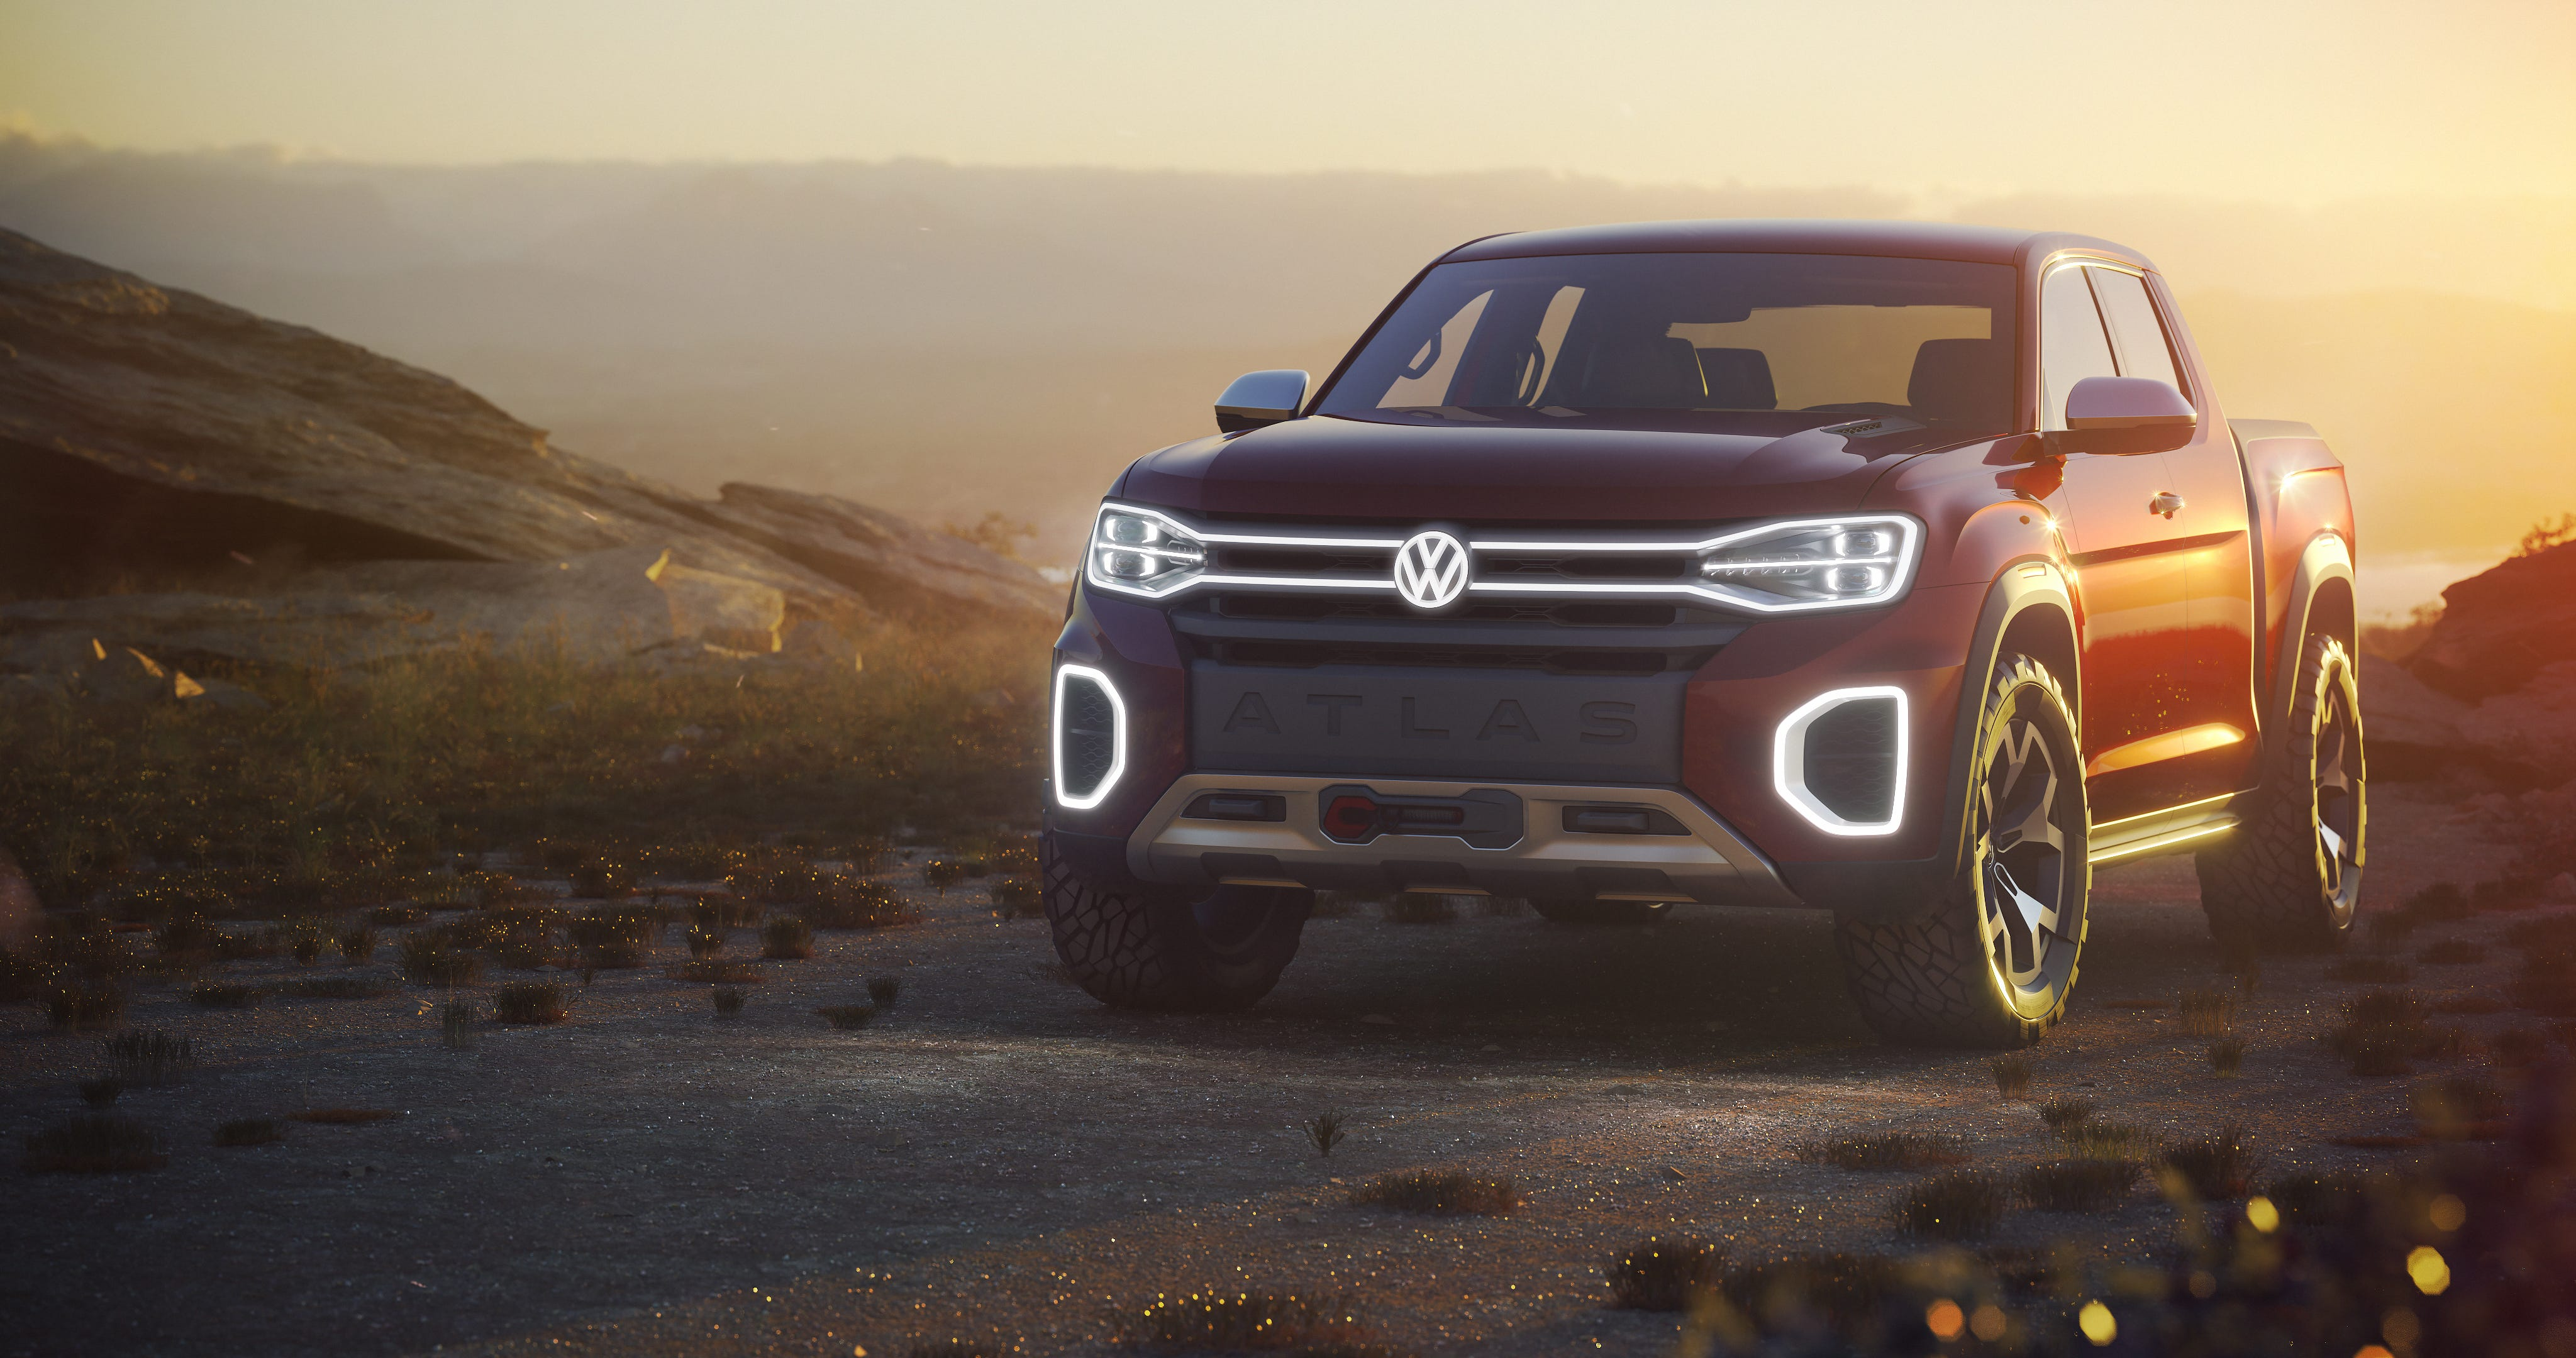 The Volkswagen Atlas Tanoak Pickup Truck Concept Vehicle